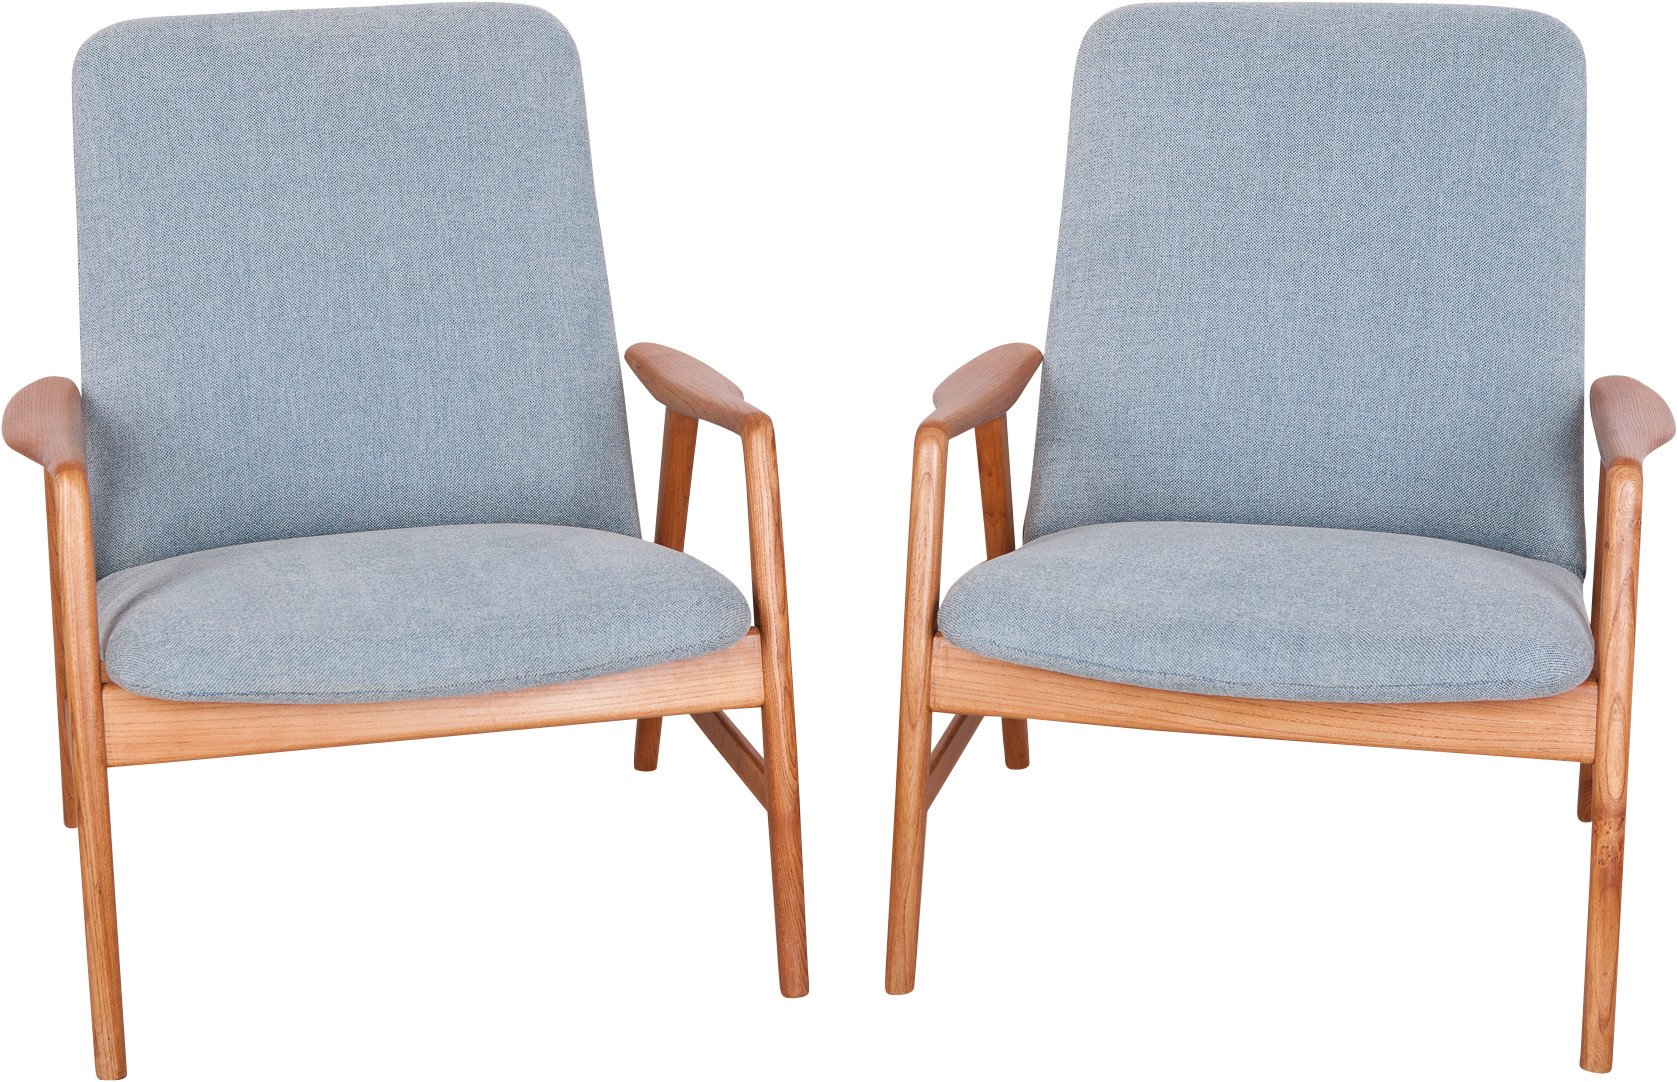 Pair of Armchairs by A. Svensson for Fritz Hansen, Denmark, 1960s